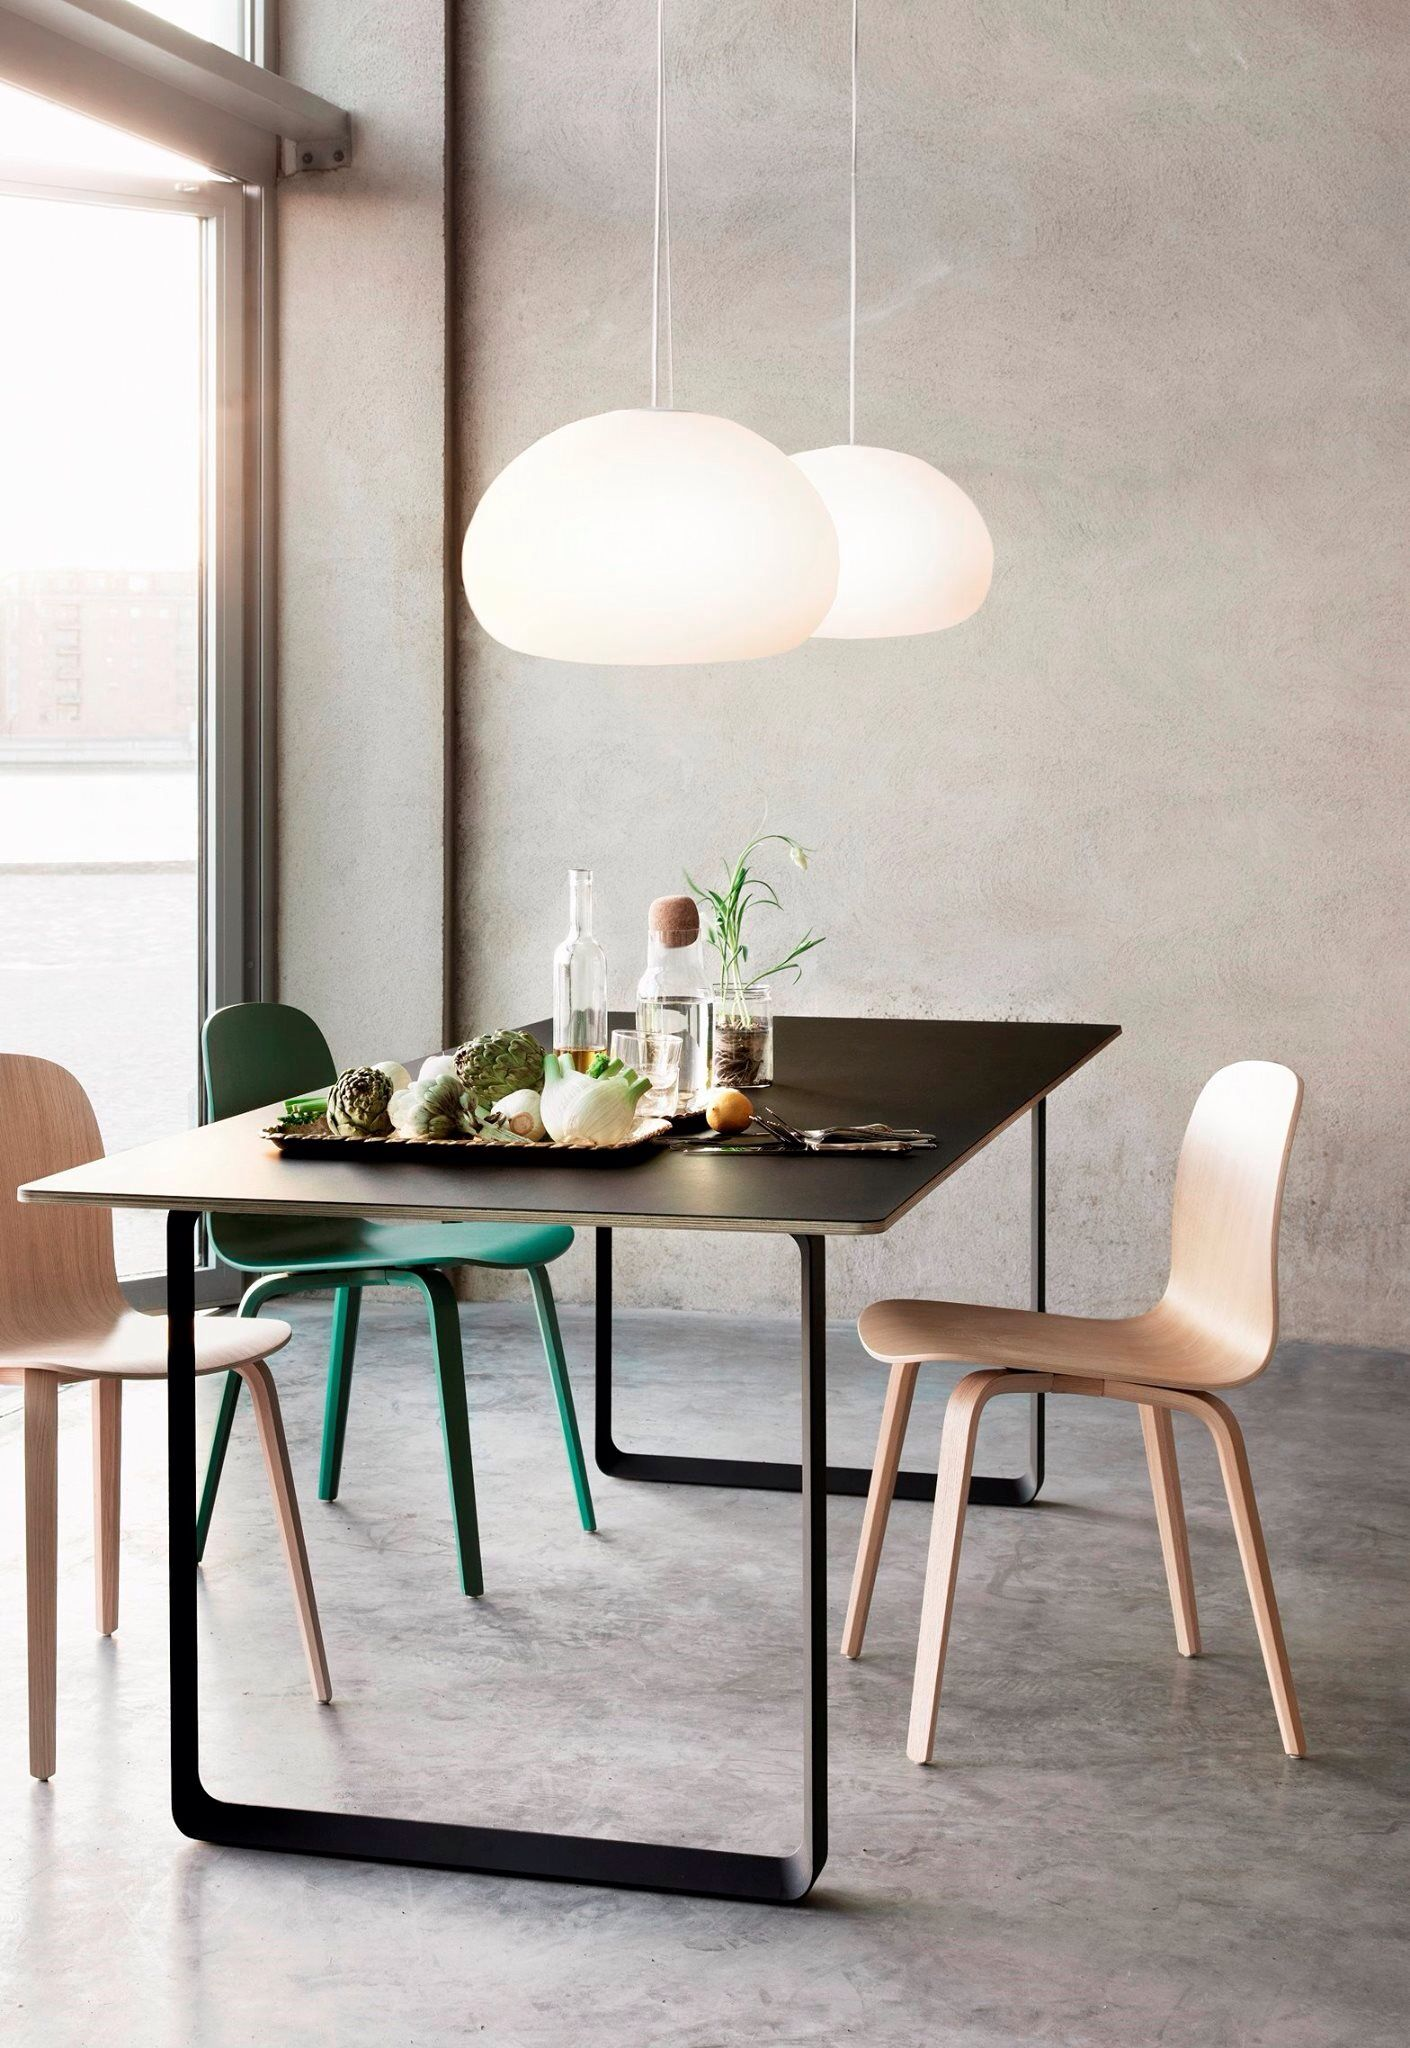 Muuto table designed by TAF Architects